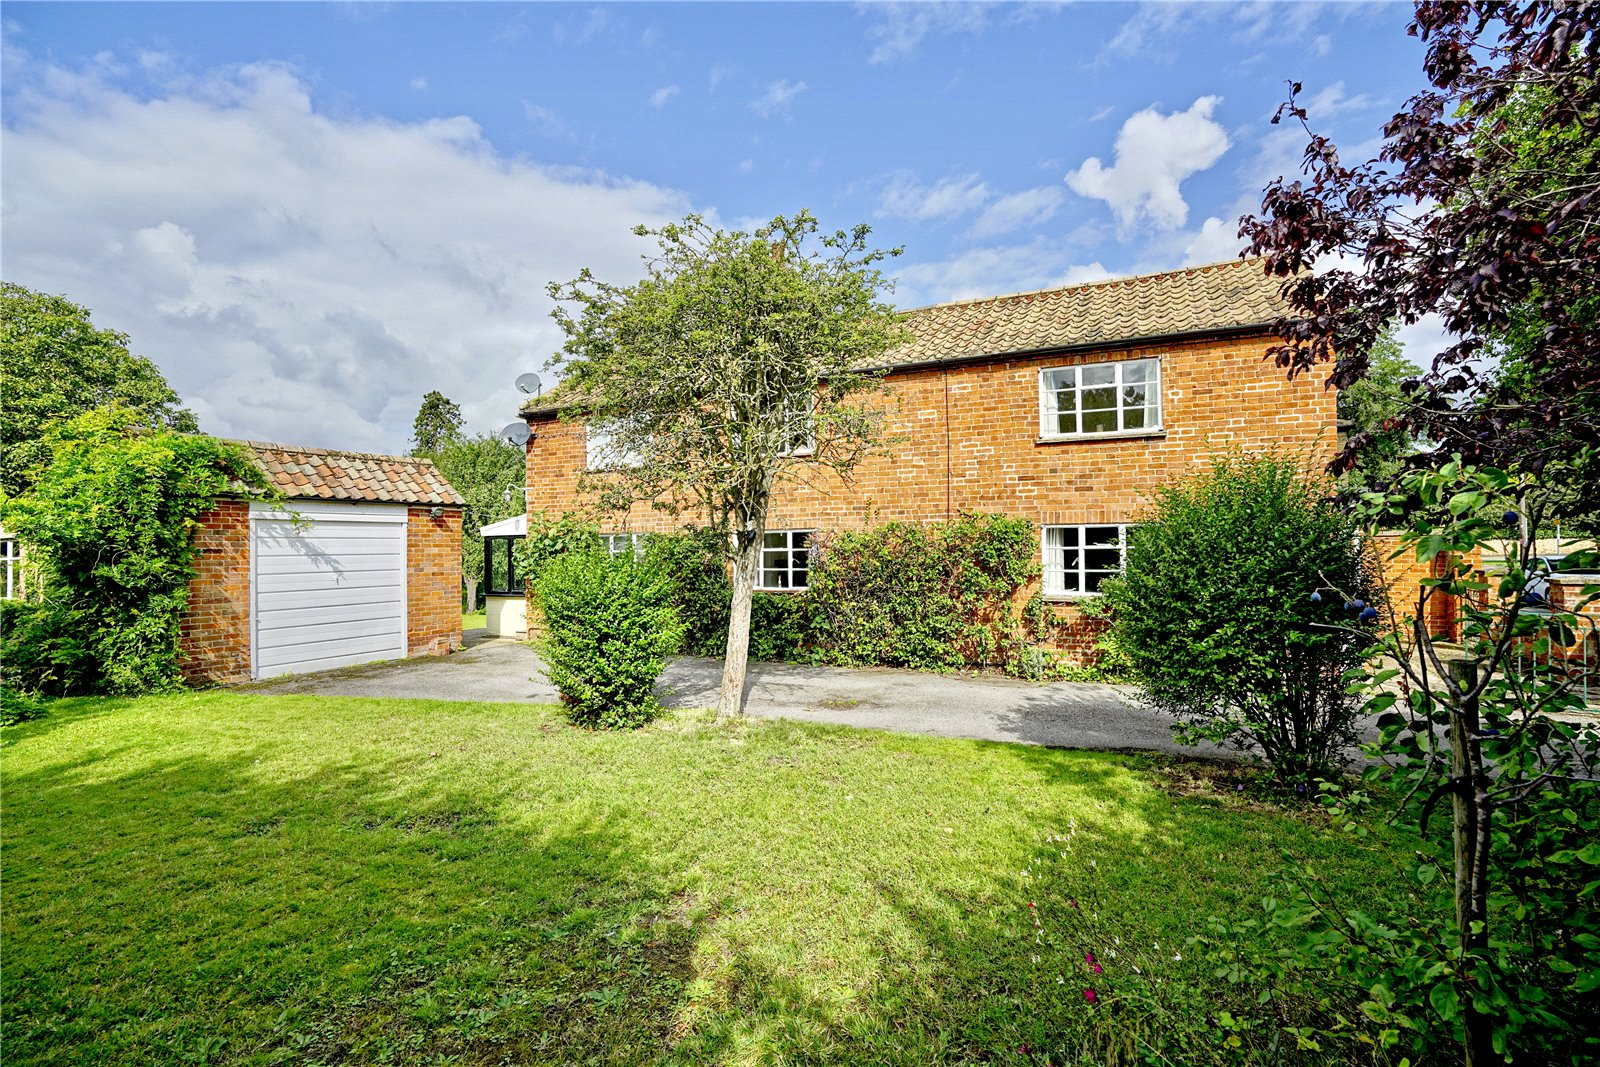 4 bed house for sale in Buckden, Hunts End, PE19 5SU 0